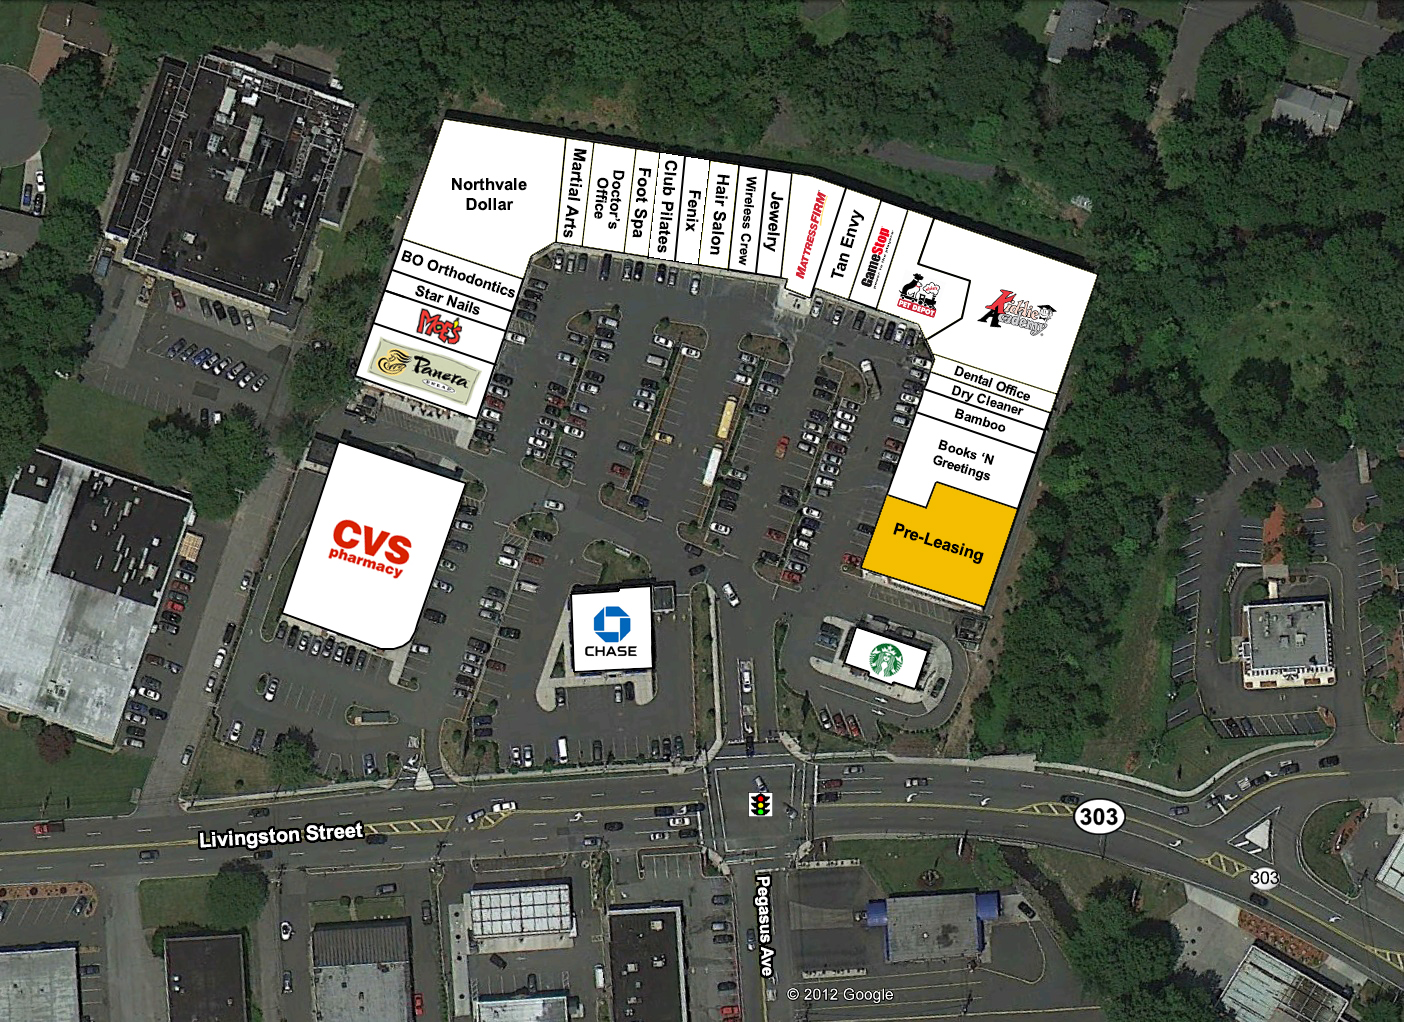 Northvale Square The Goldstein Group Nj And Ny Retail Real Estate